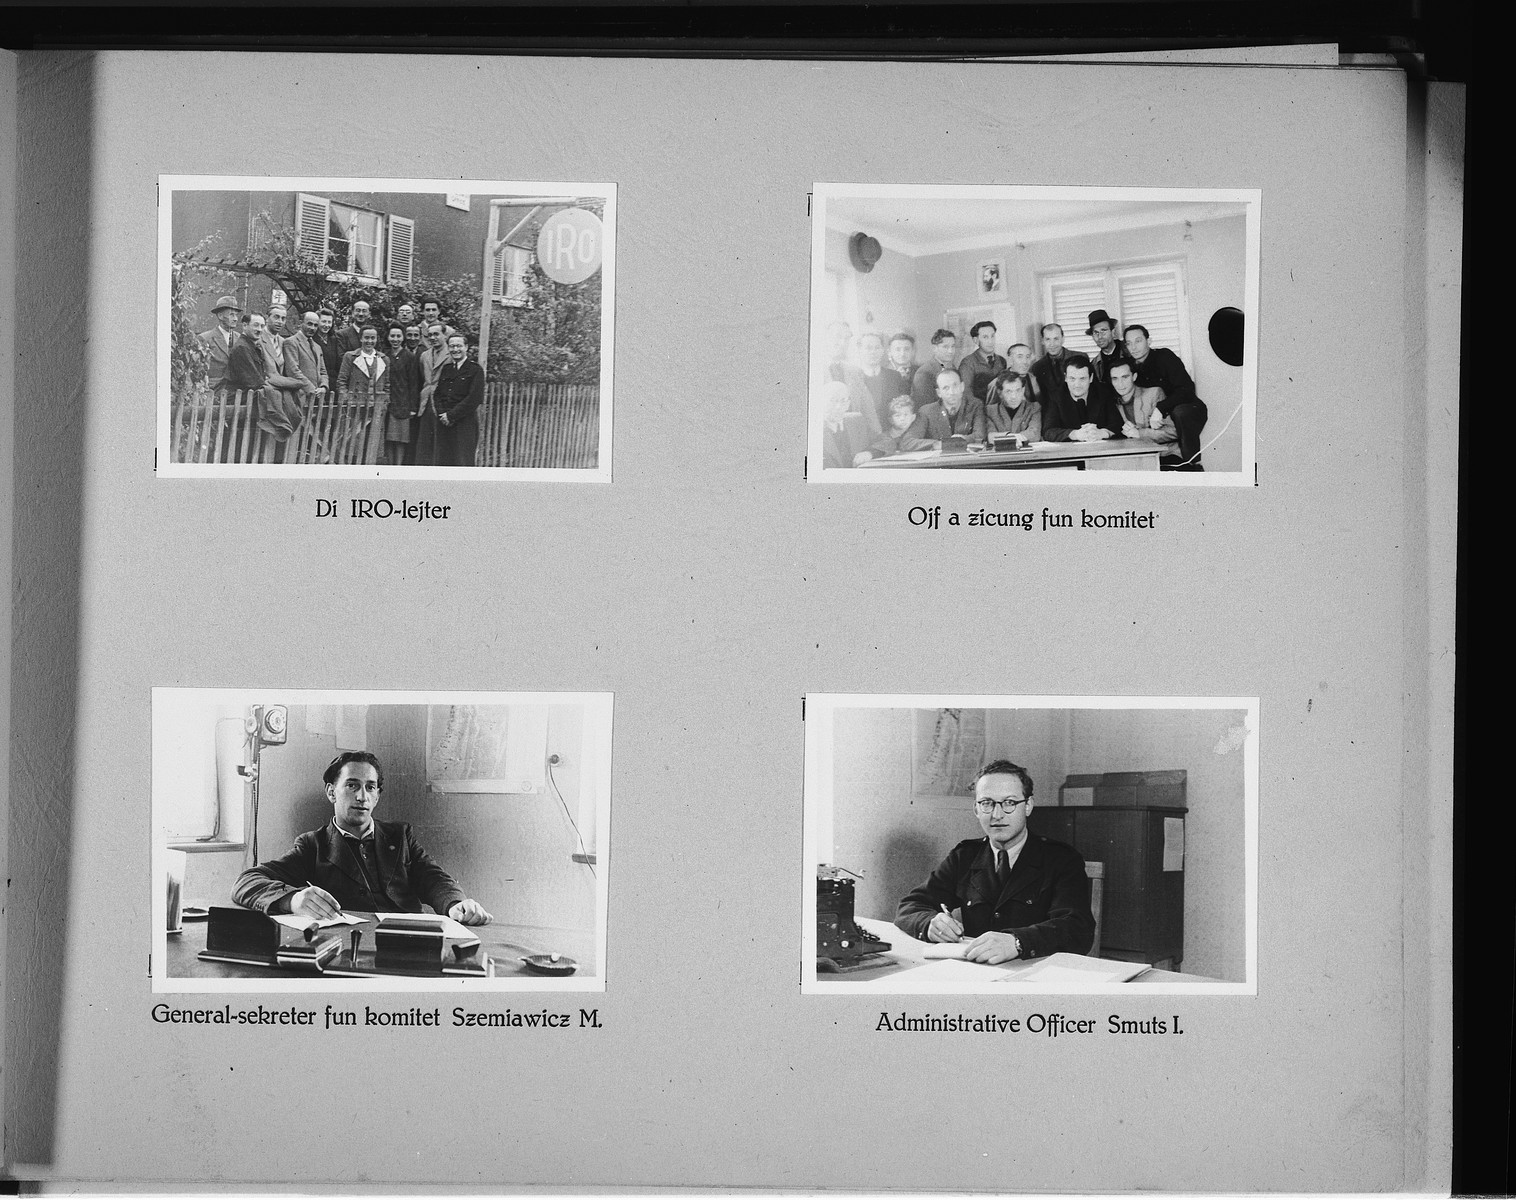 Page from a photo album of the Wasseralfingen DP camp showing members of the camp's administration.